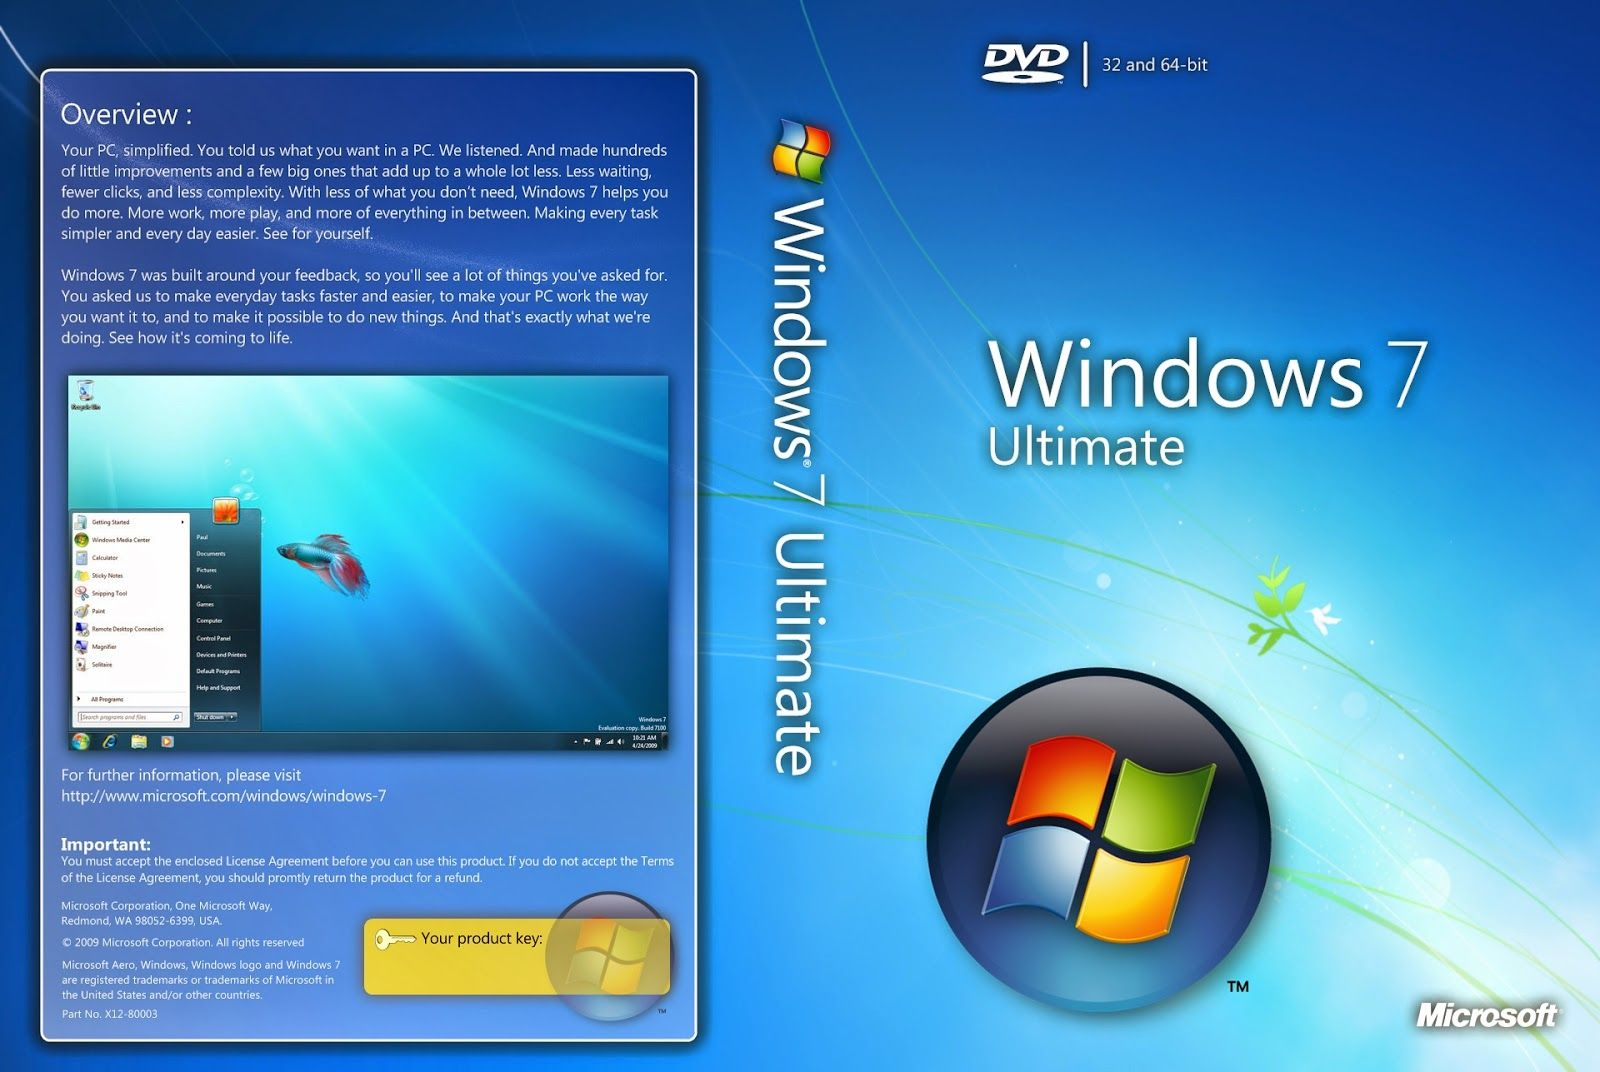 microsoft.com windows 7 free download